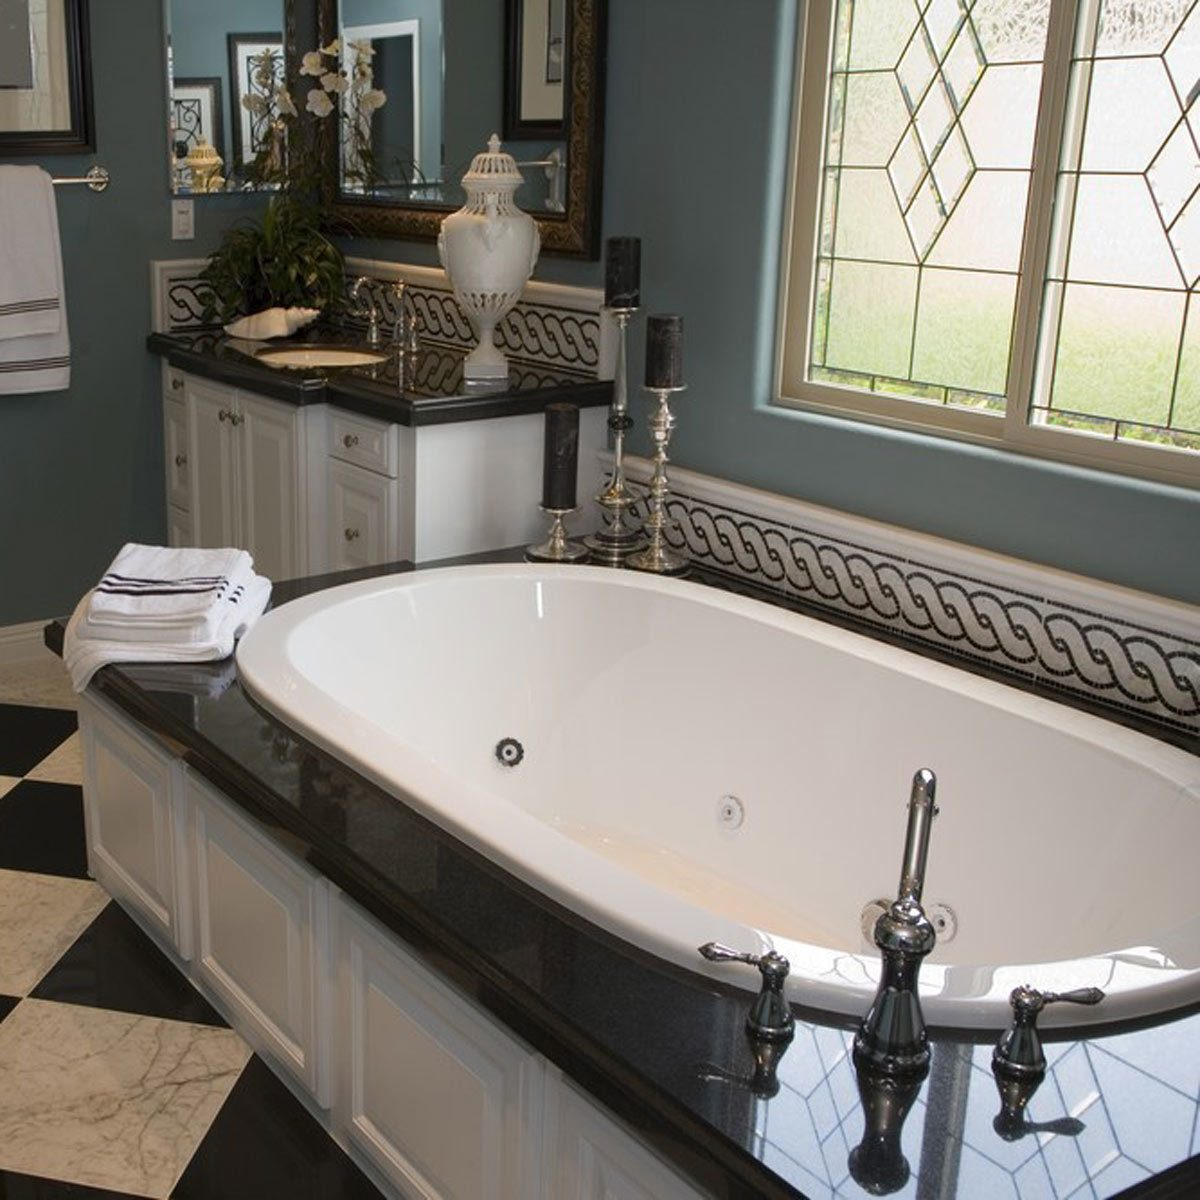 13 tile tips for better bathroom tile the family handyman. Black Bedroom Furniture Sets. Home Design Ideas